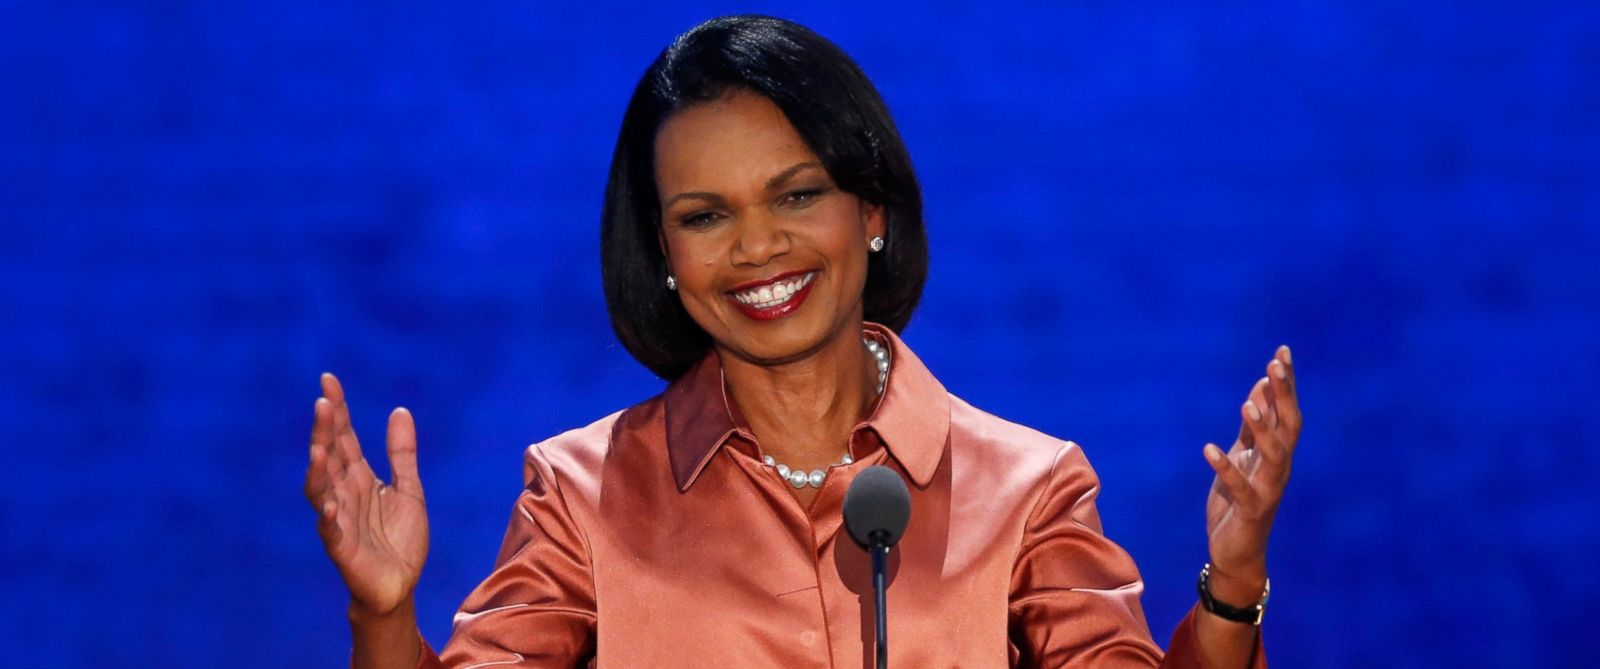 Carl De Souza  Afp getty Images U S  Secretary of State Condoleezza Rice The Salt Lake Tribune